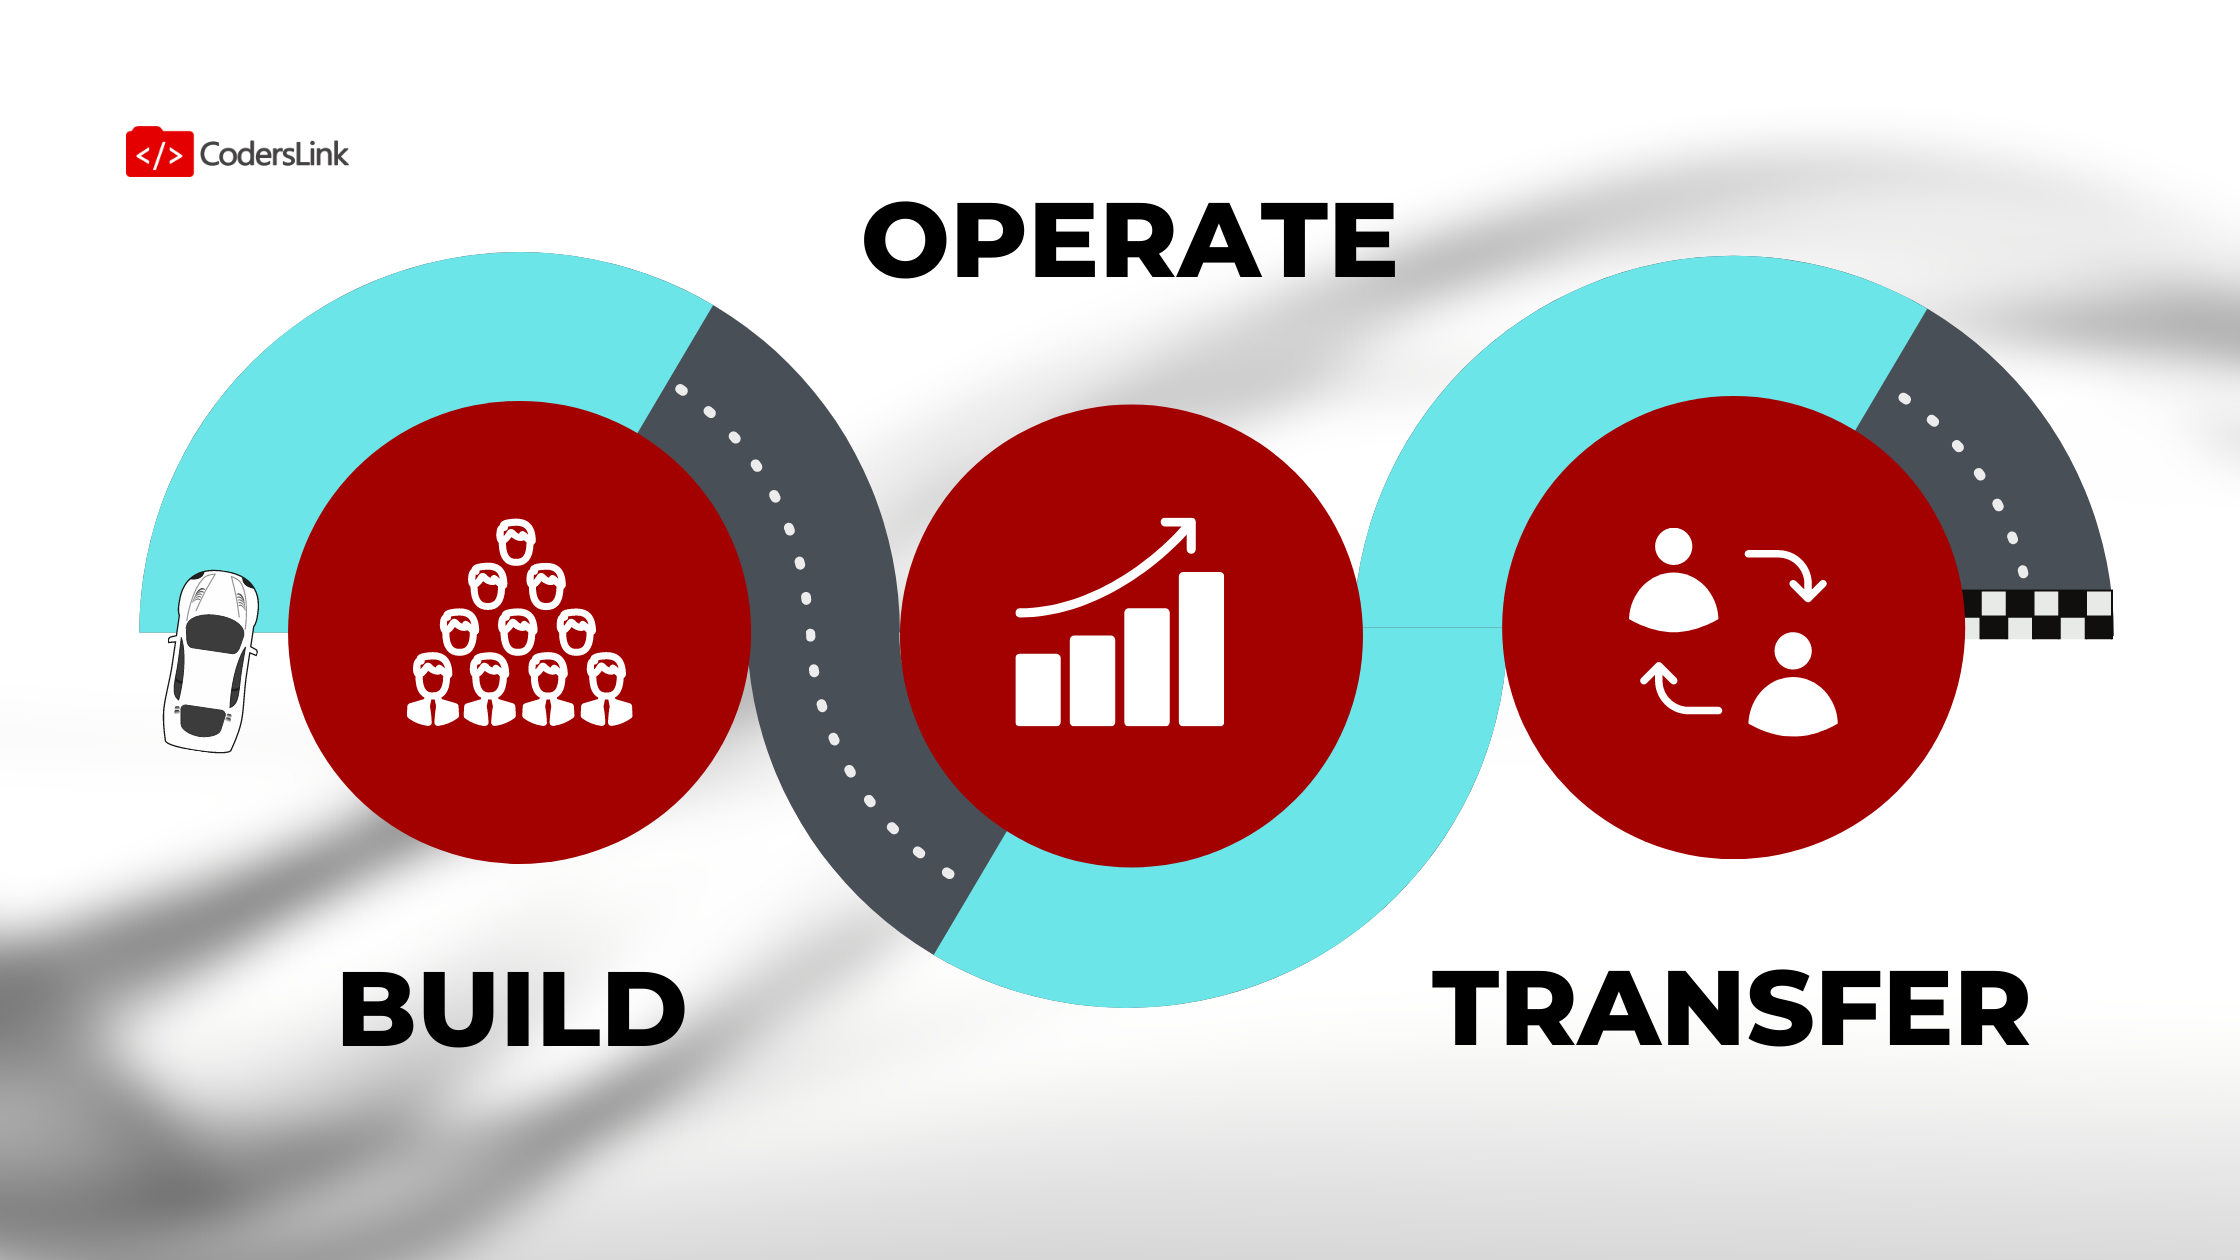 Find out how Build Operate Transfer works in the IT industry and figure out the workflow and timelines top outsourcing providers use.